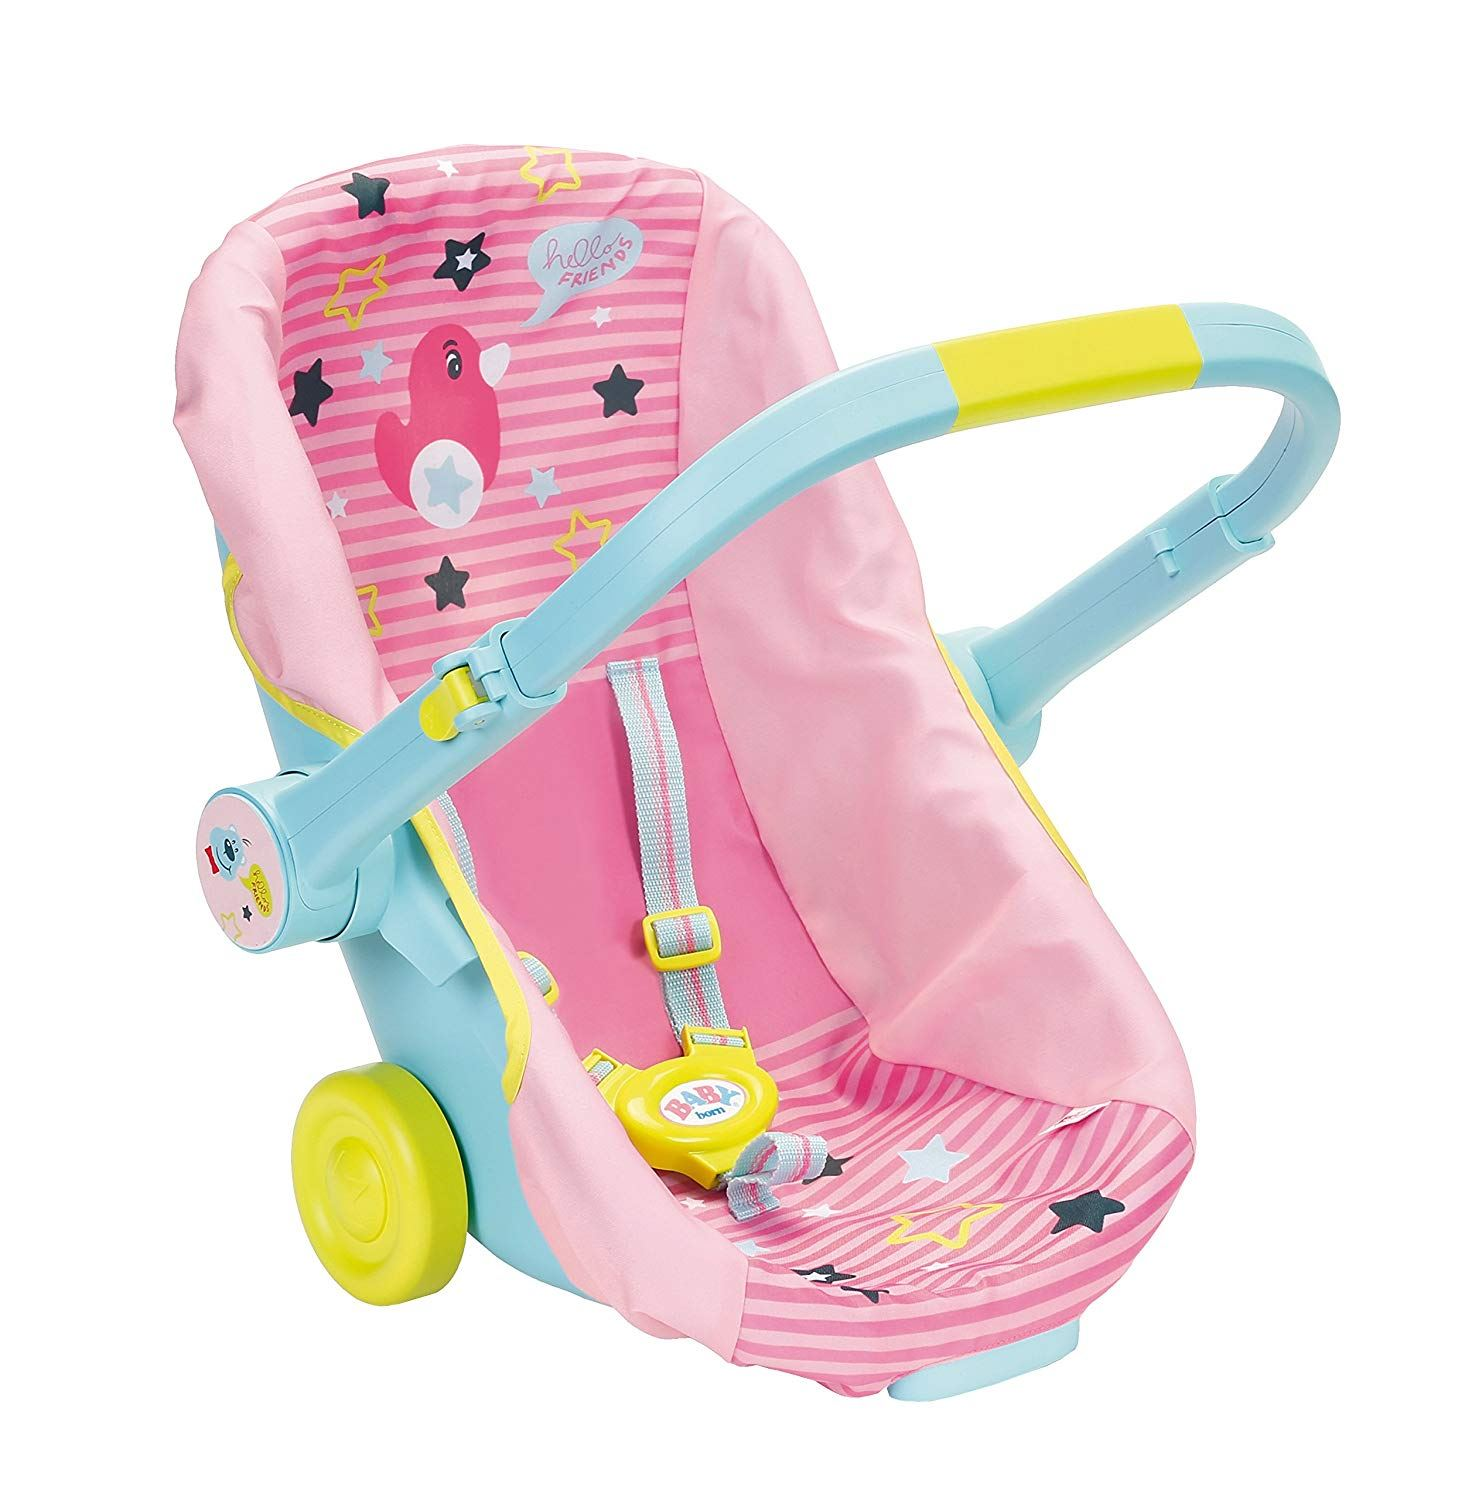 NEW BABY BORN COMFORT DOLL CARSEAT CARRIER ZAPFT CREATION